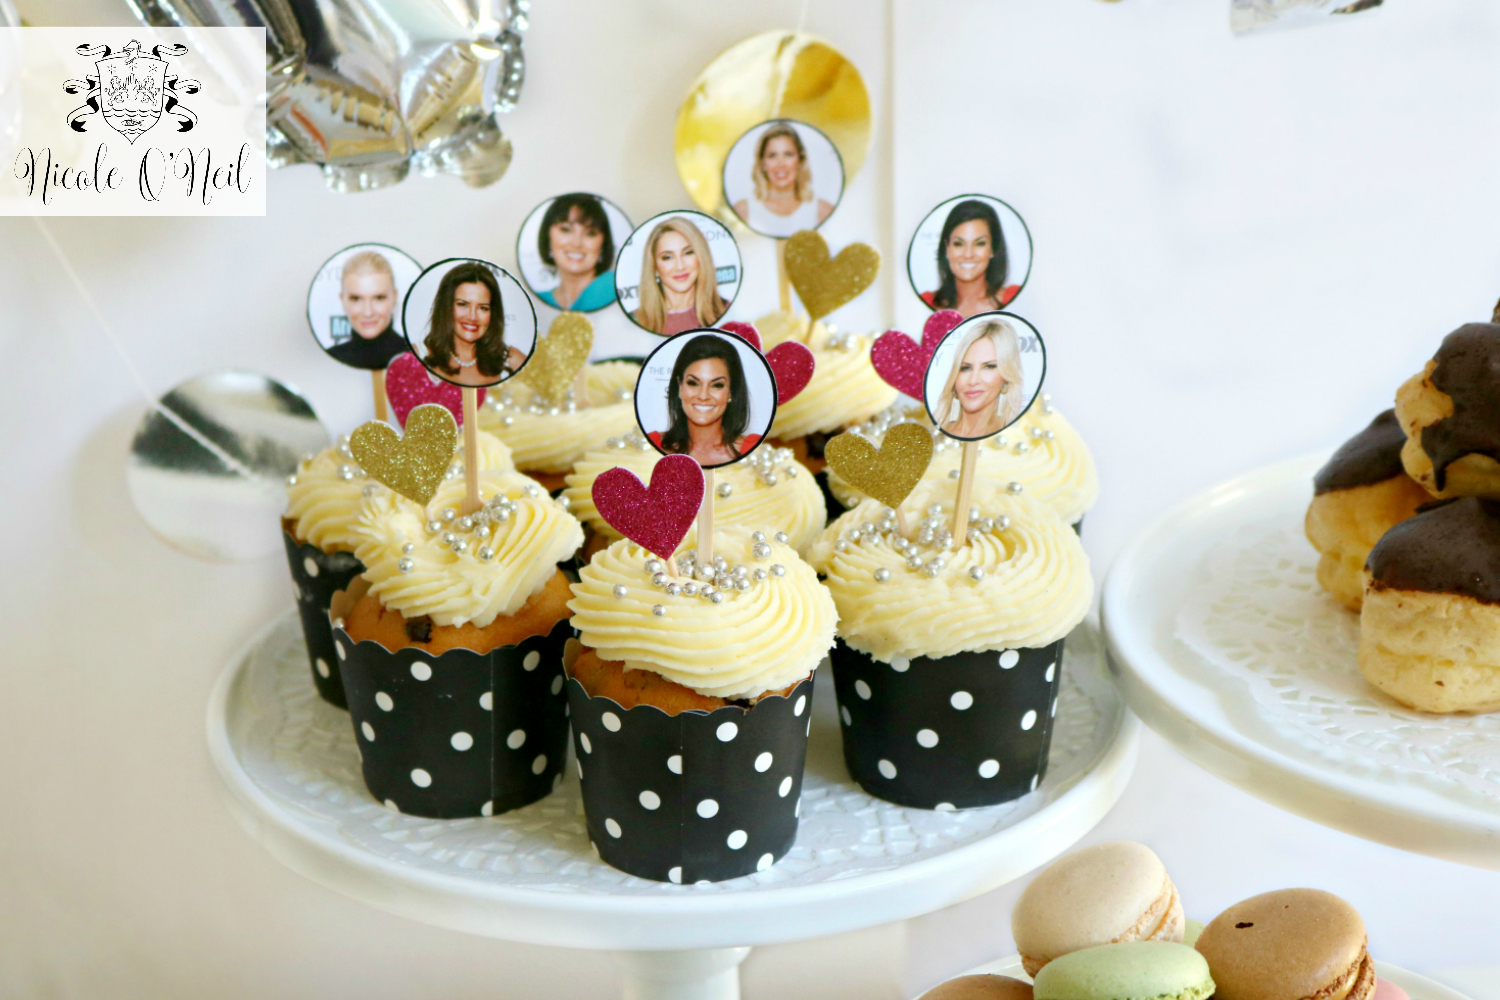 Real Housewives of Sydney Cupcakes - Choose Your Favourite Housewife - DIY Real Housewives of Sydney Reunion Party